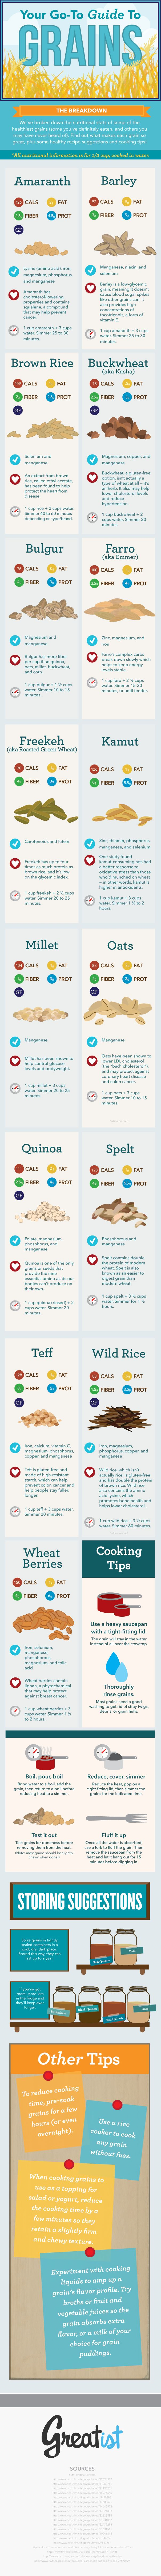 Your Go-To Gide for Choosing Healthier Grains #infographic from @Greatist.  Find even more info, recipes, etc. on http://wholegrainscouncil.org/ and @Oldways Oldways